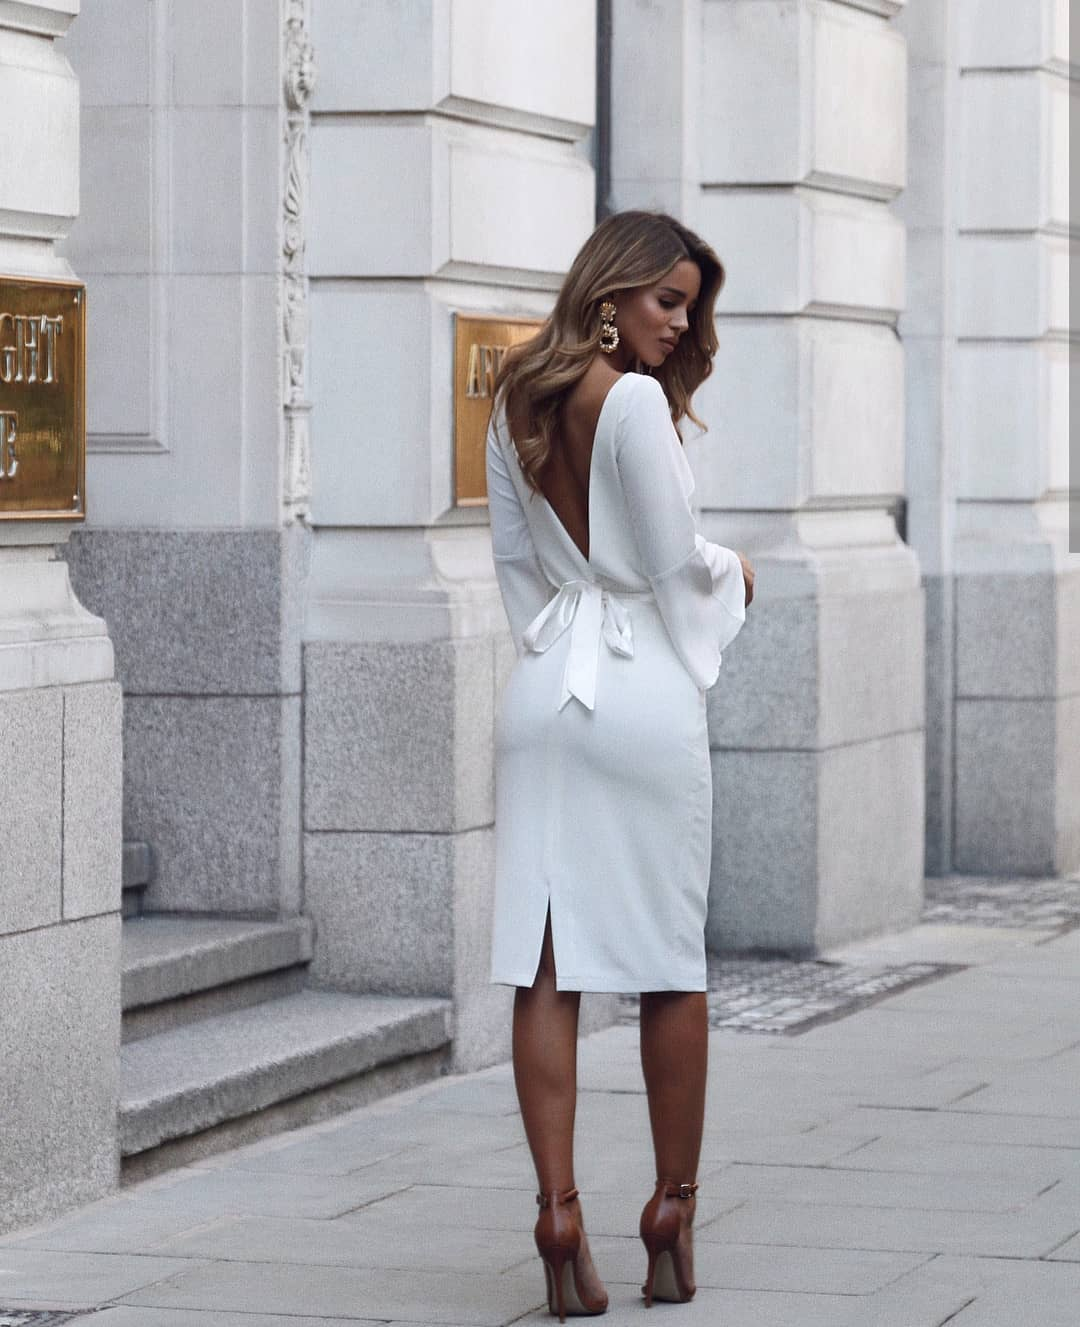 White Dress With Open V-Back And Brown Heeled Sandals For Summer 2019